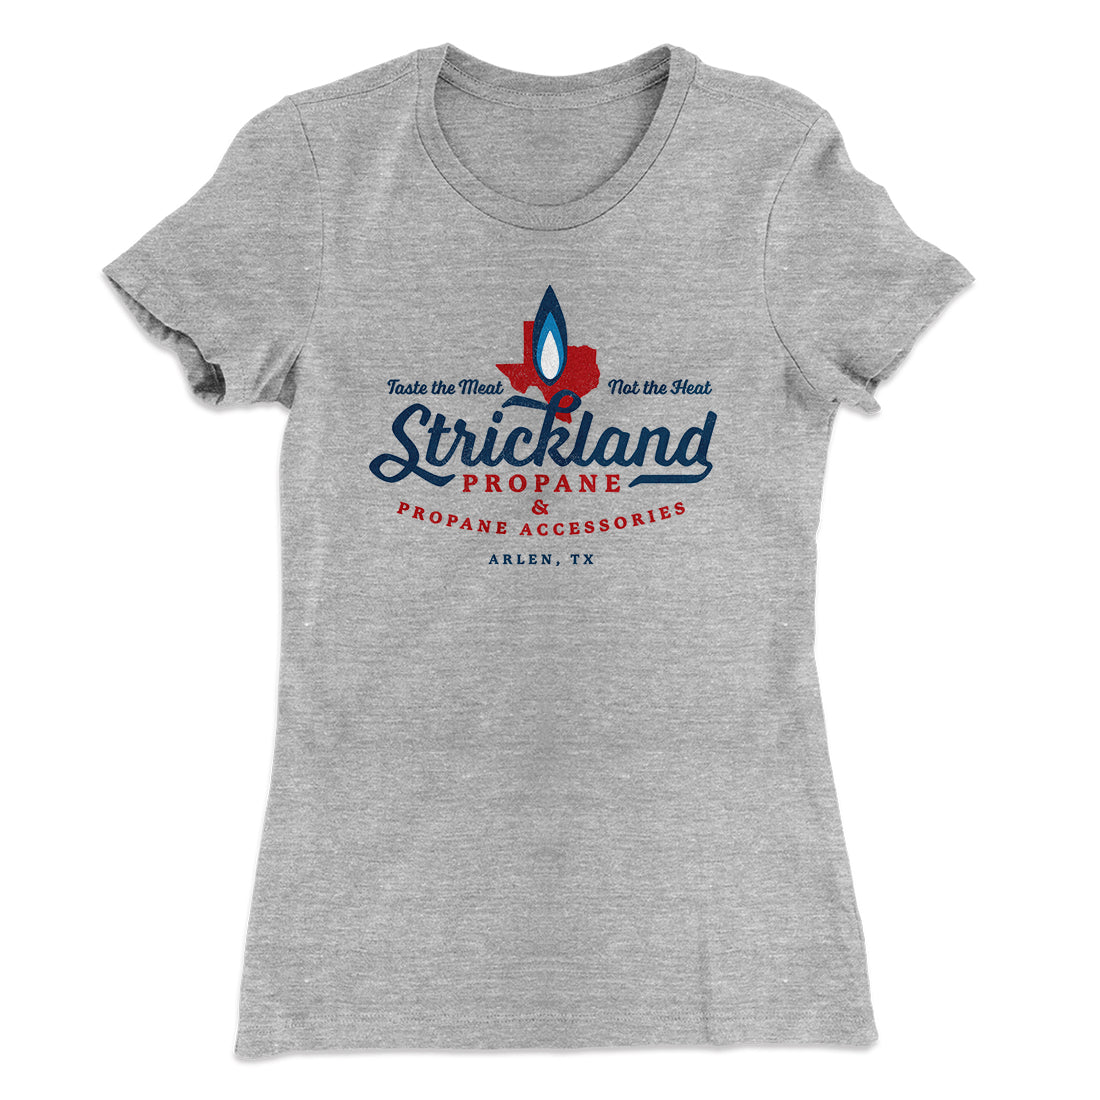 4ec5fa07dbcb0 Strickland Propane Women s T-Shirt-90 10 Heather Gray - Famous IRL